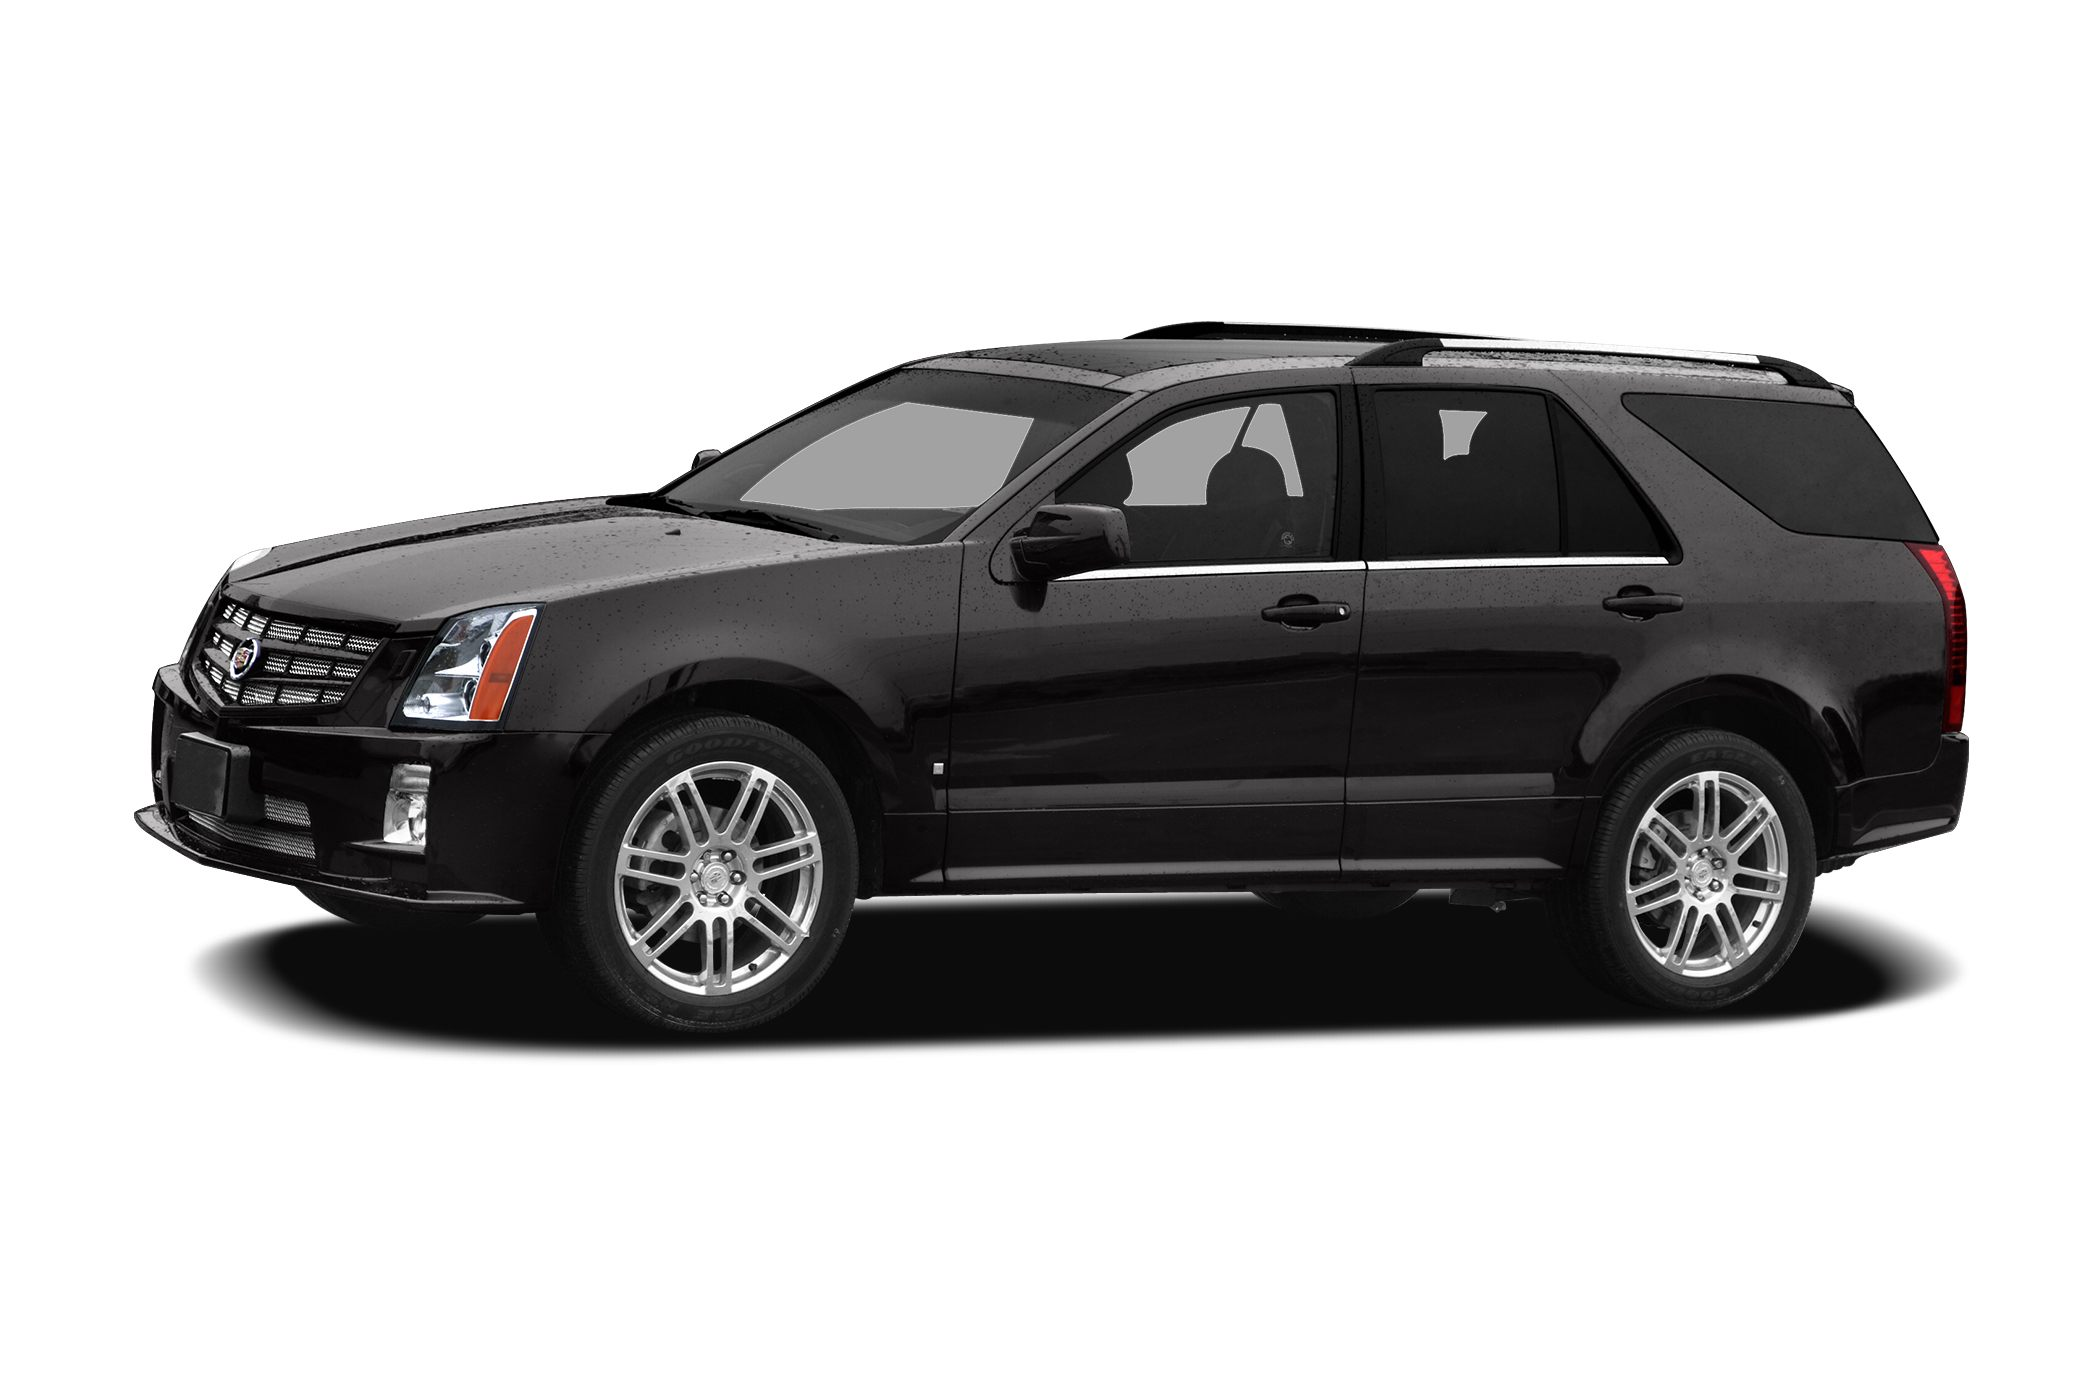 2009 Cadillac SRX V6 SUV for sale in Irvington for $11,995 with 102,171 miles.